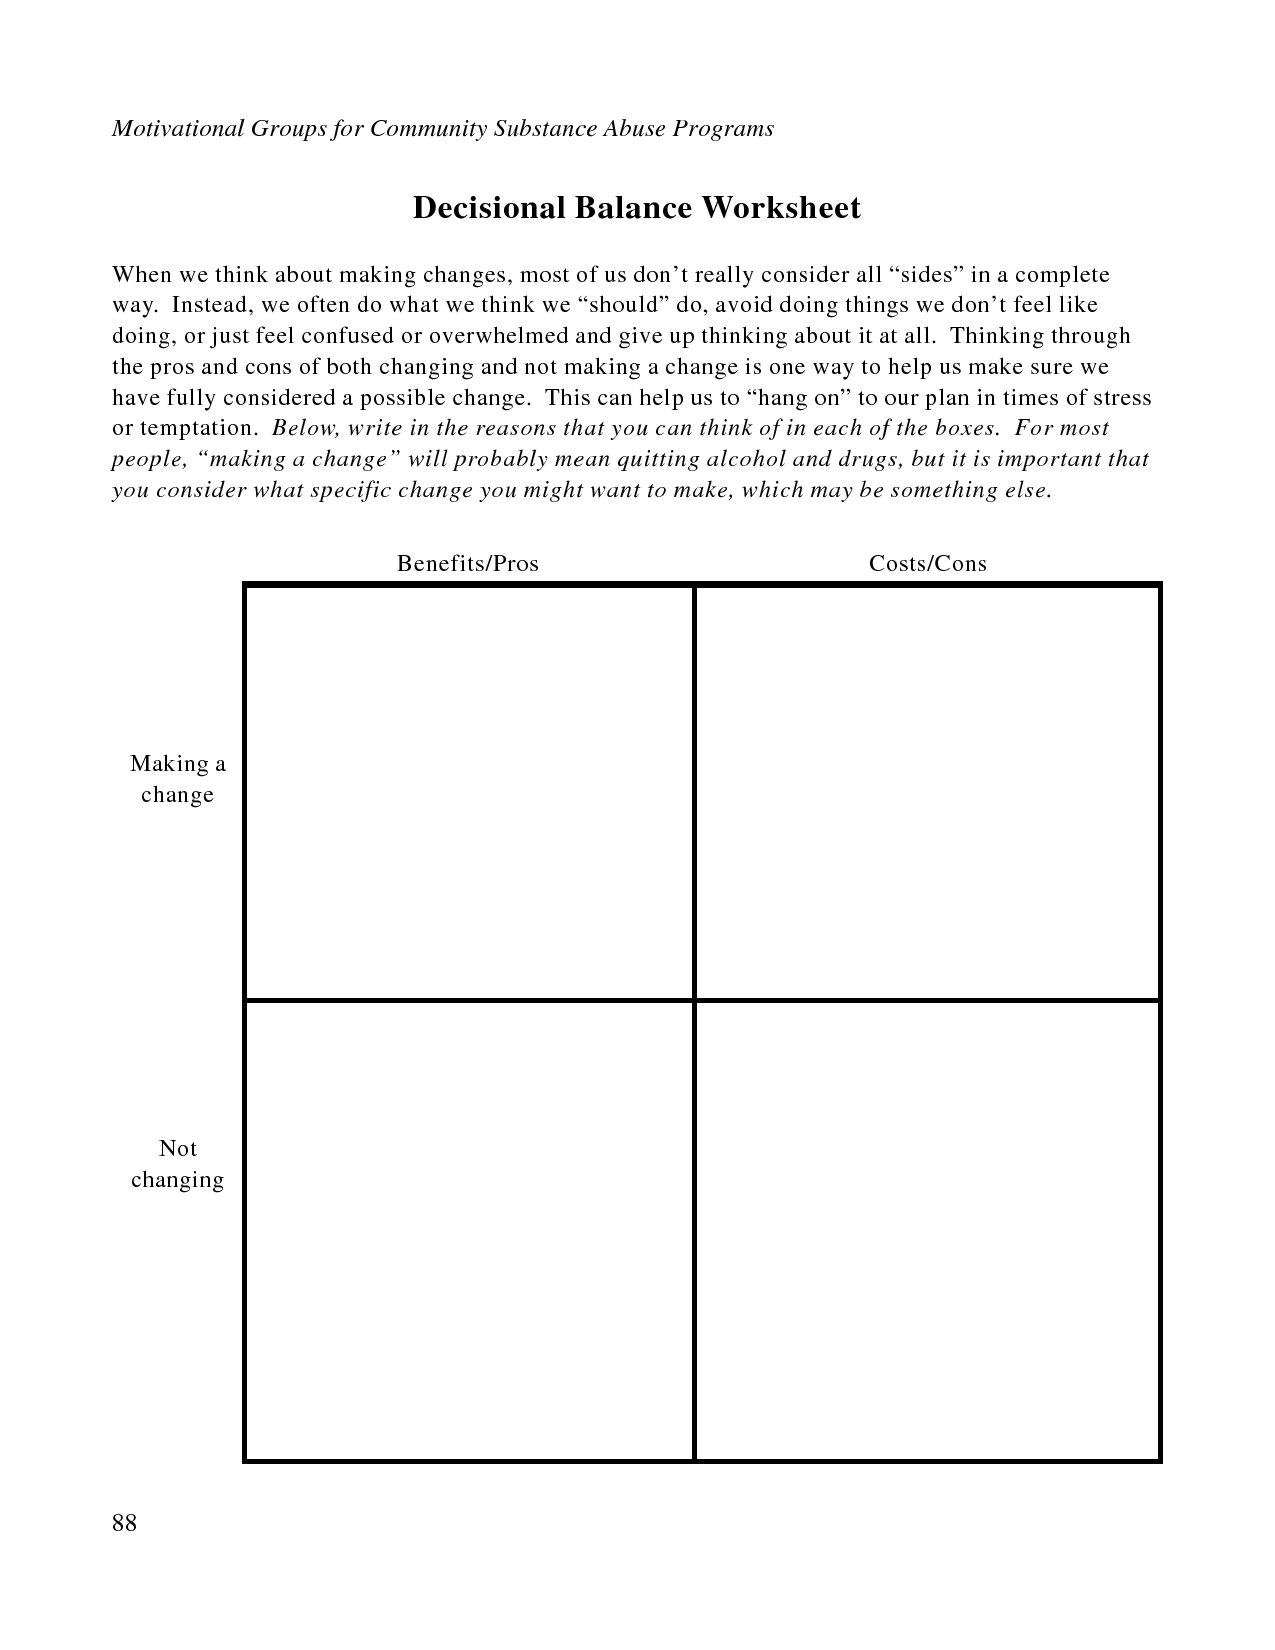 Free Printable Dbt Worksheets  Decisional Balance Worksheet  Pdf